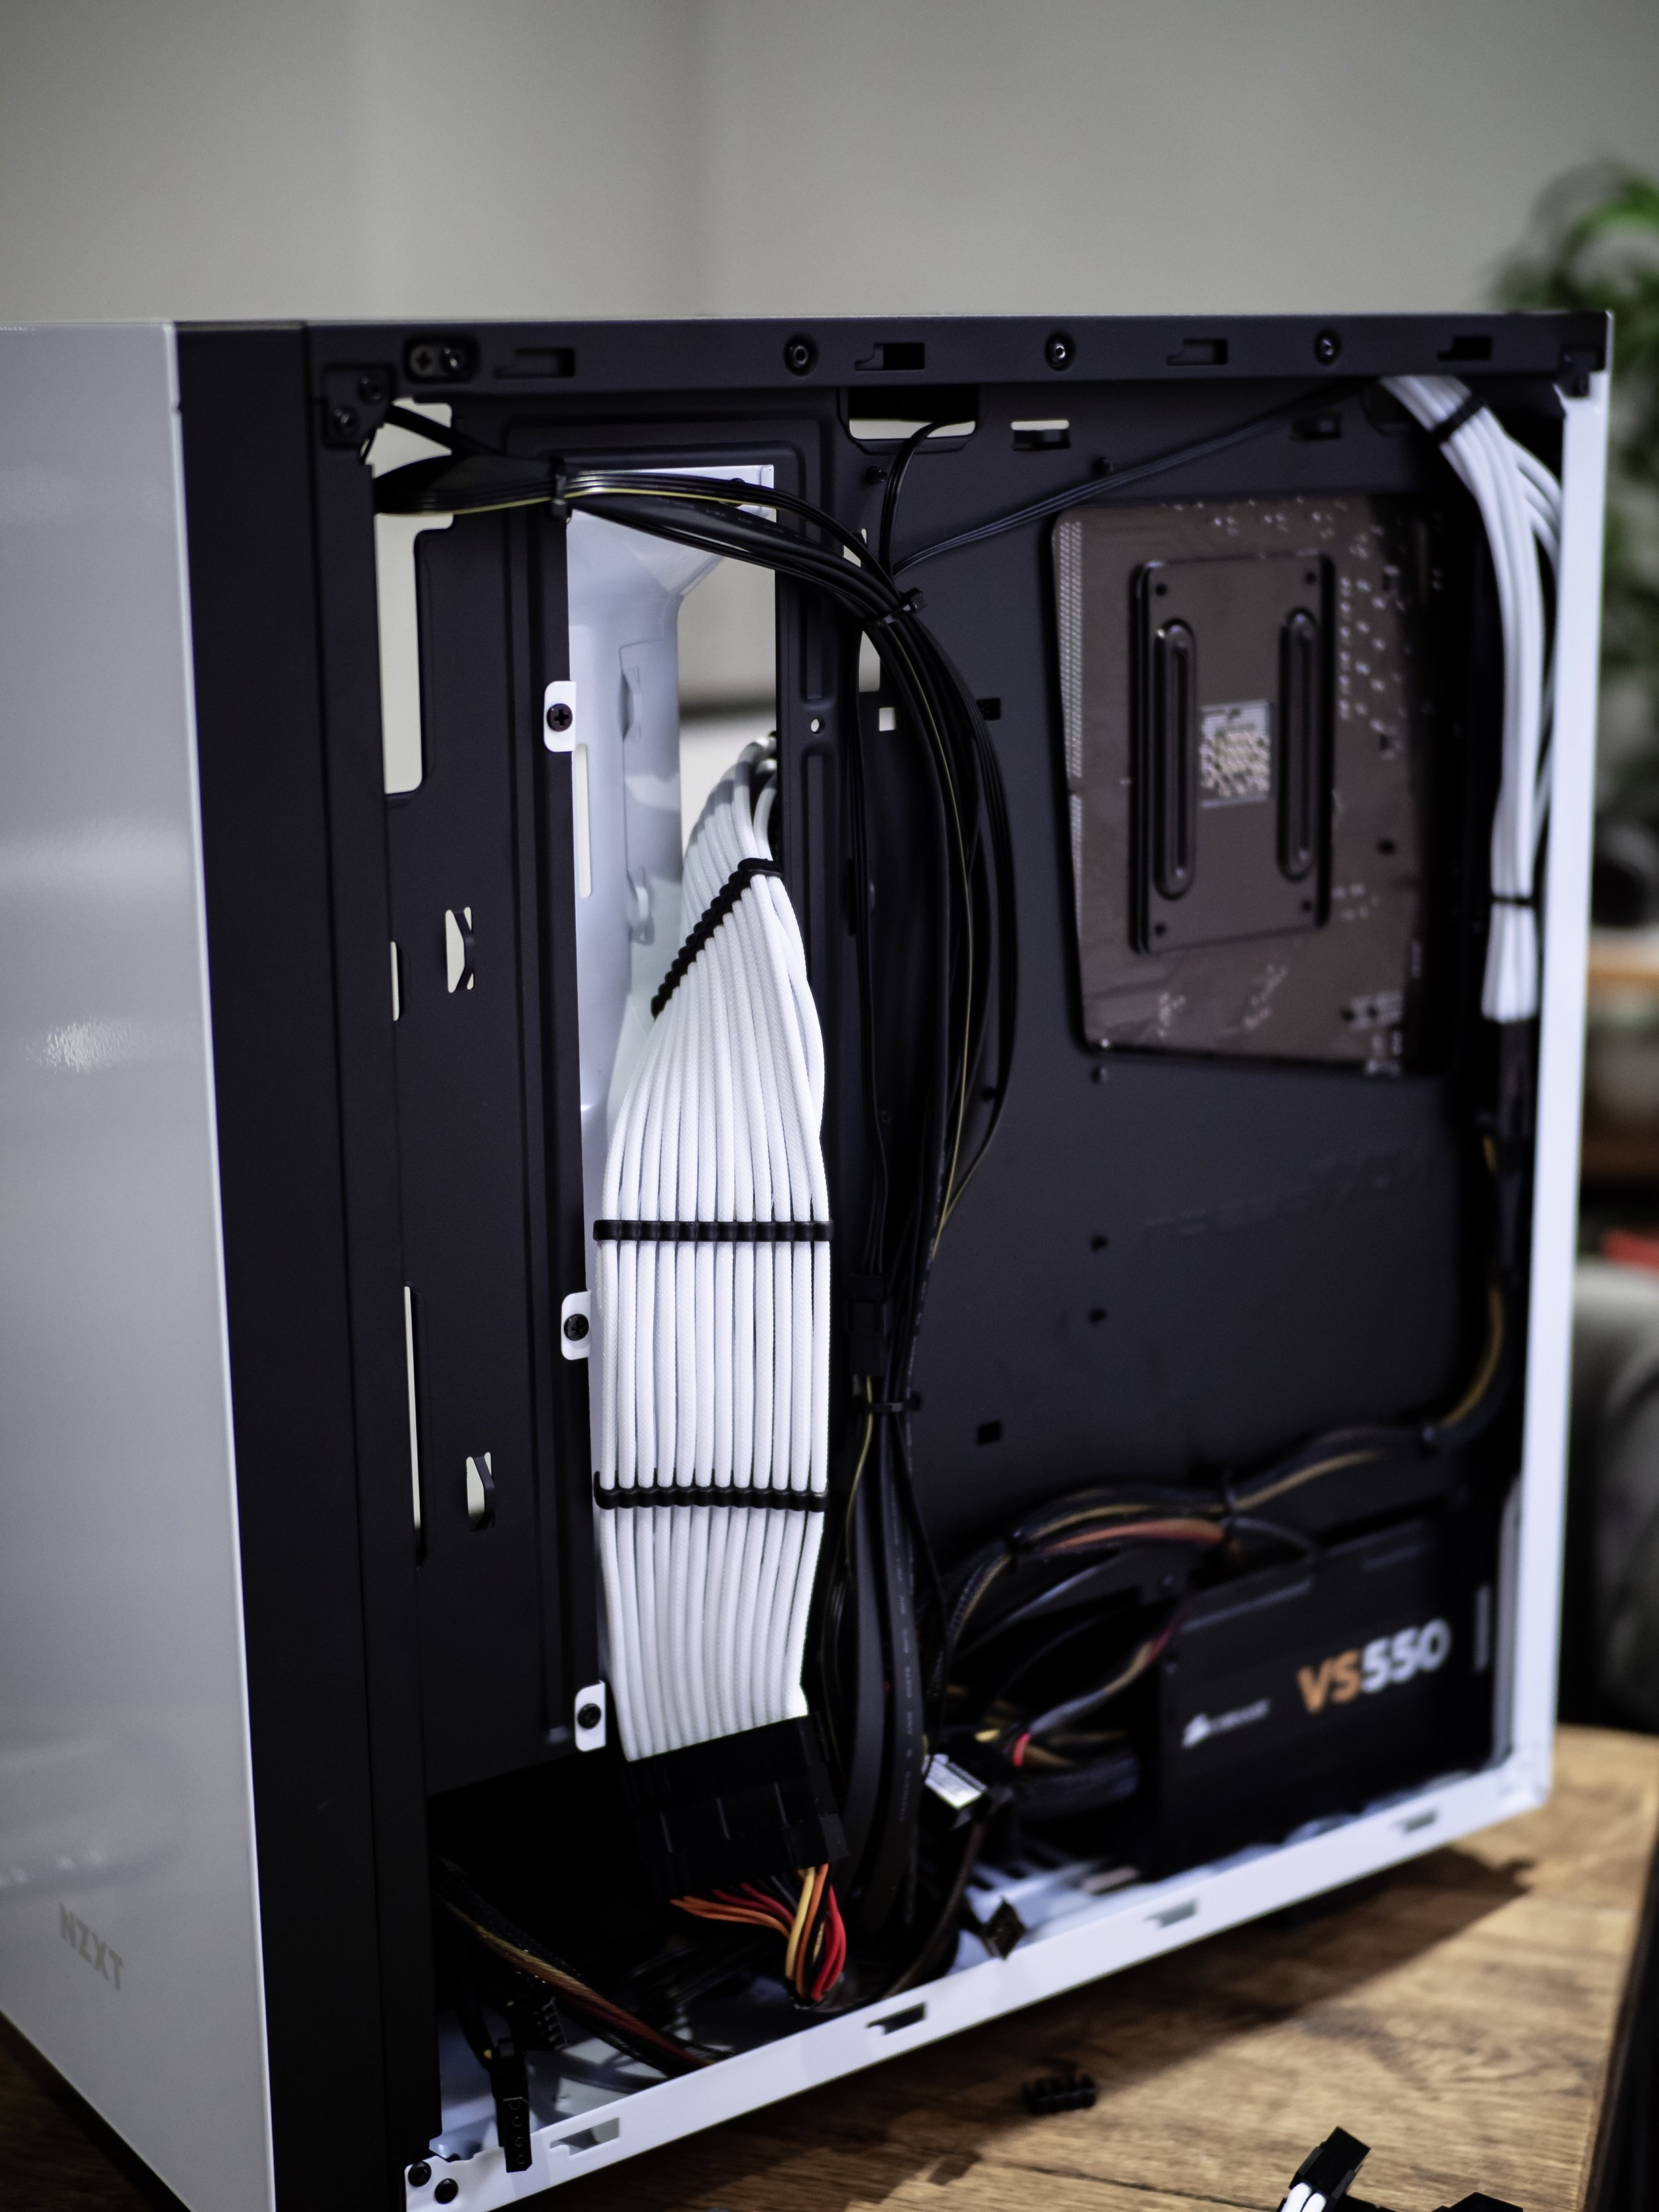 Gaming PC Build White Cable Management Braided NZXT Case Corsair VS550 PSU Power Supply Unit